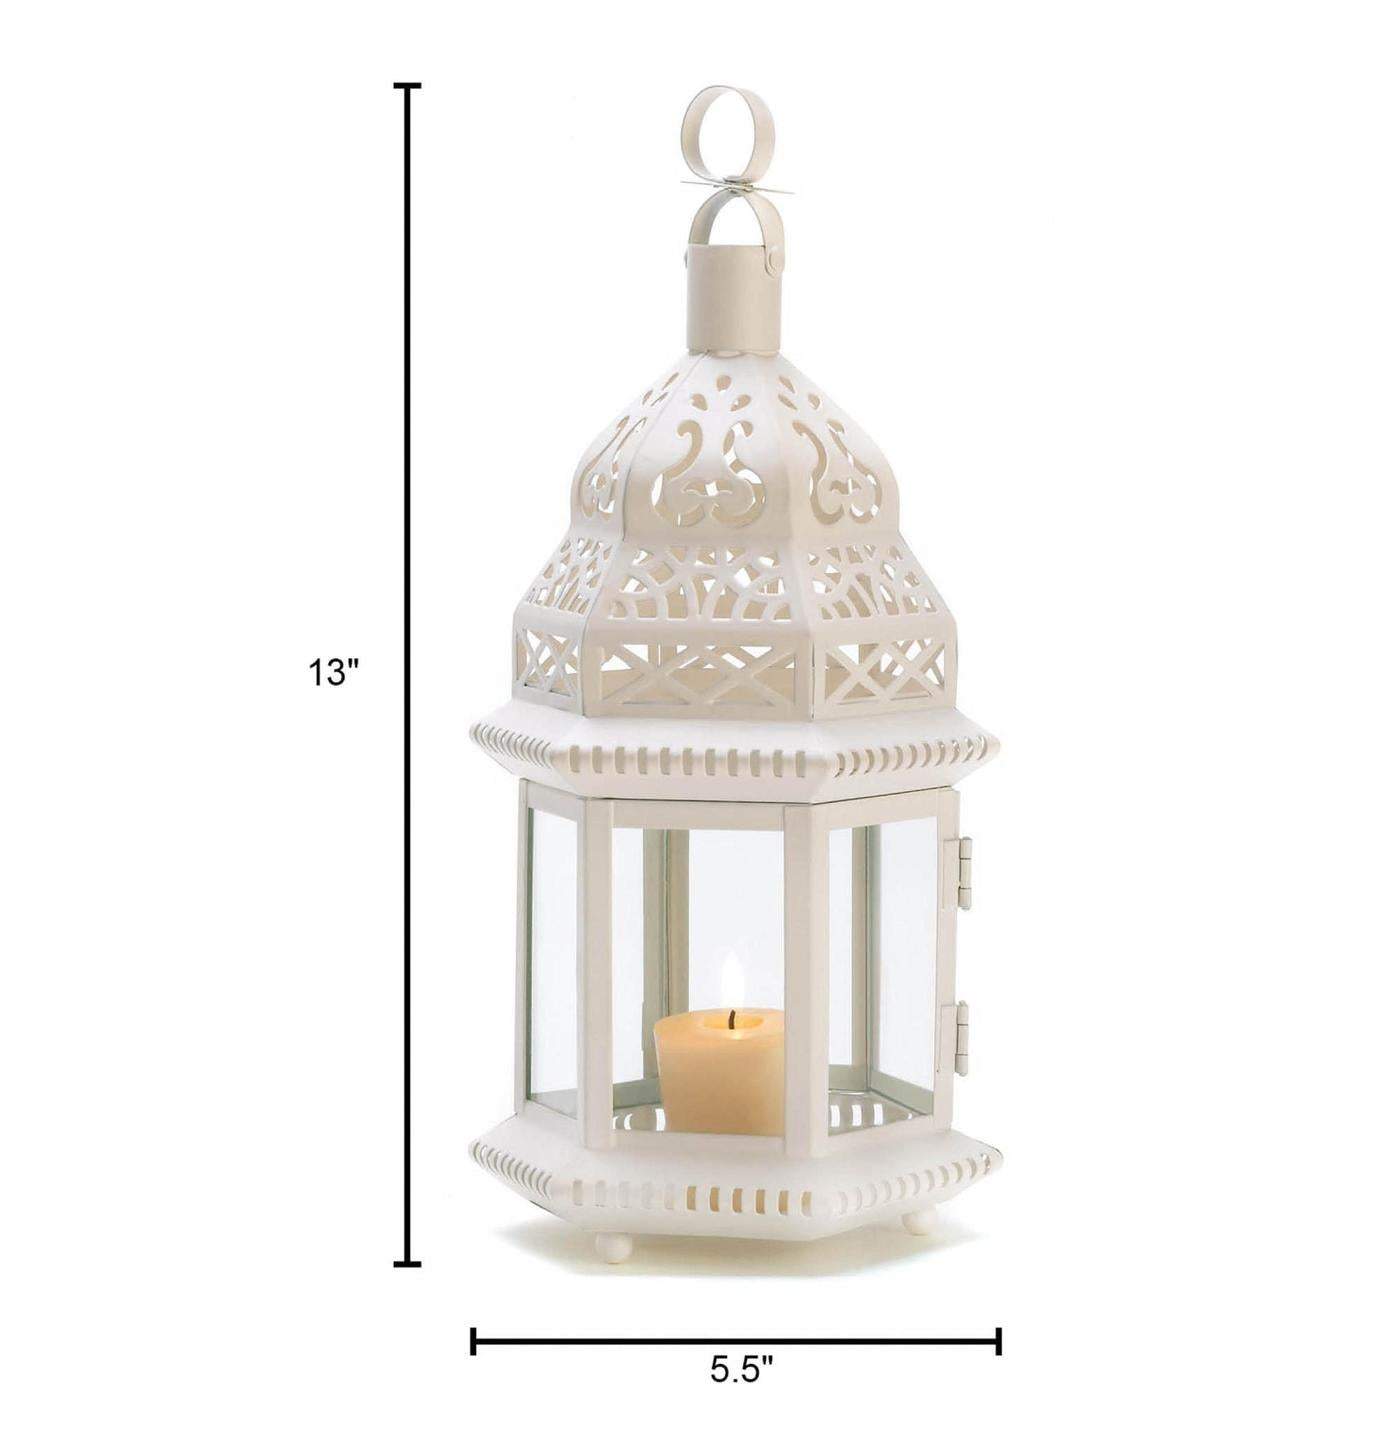 Moroccan White Candle Lantern - 13 inches